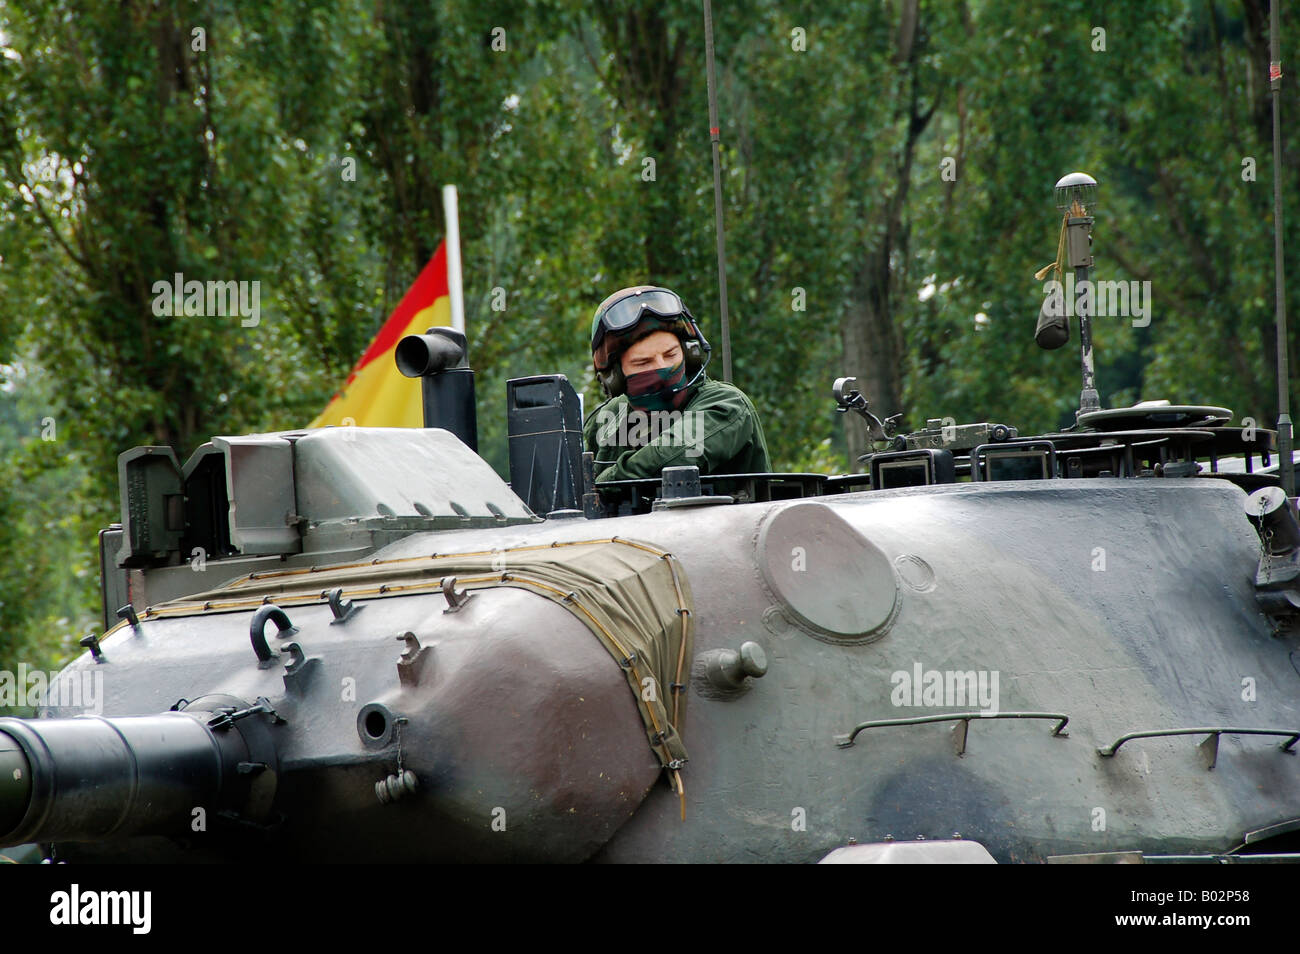 The turret of the Leopard 1A5 MBT of the Belgian Army. - Stock Image